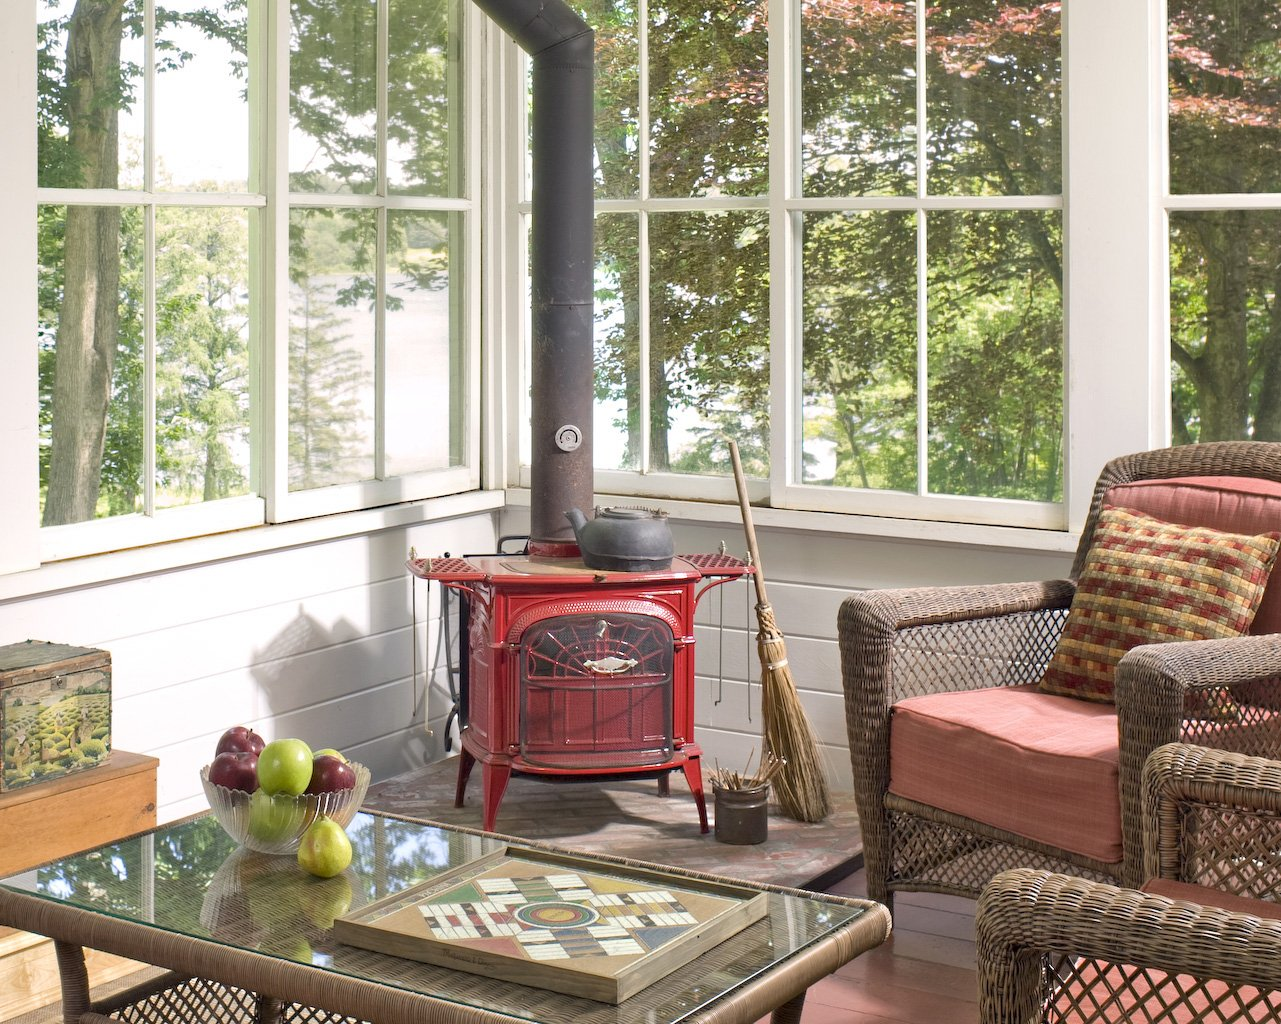 Newcastle Inn screened porch with views of gardens and Damariscotta River.